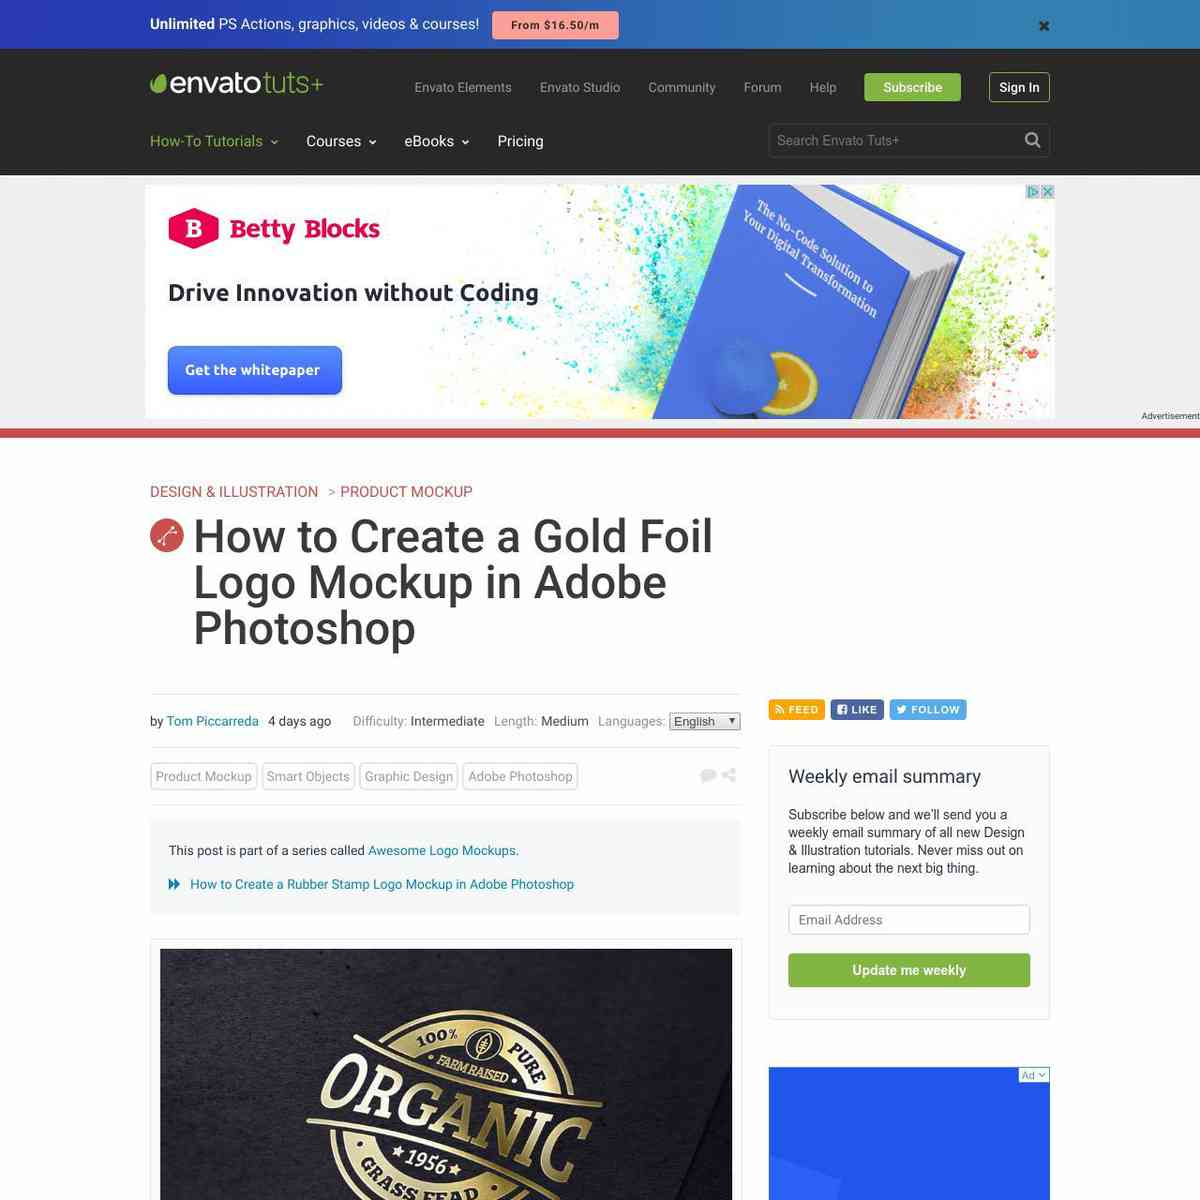 How to Create a Gold Foil Logo Mockup in Adobe Photoshop